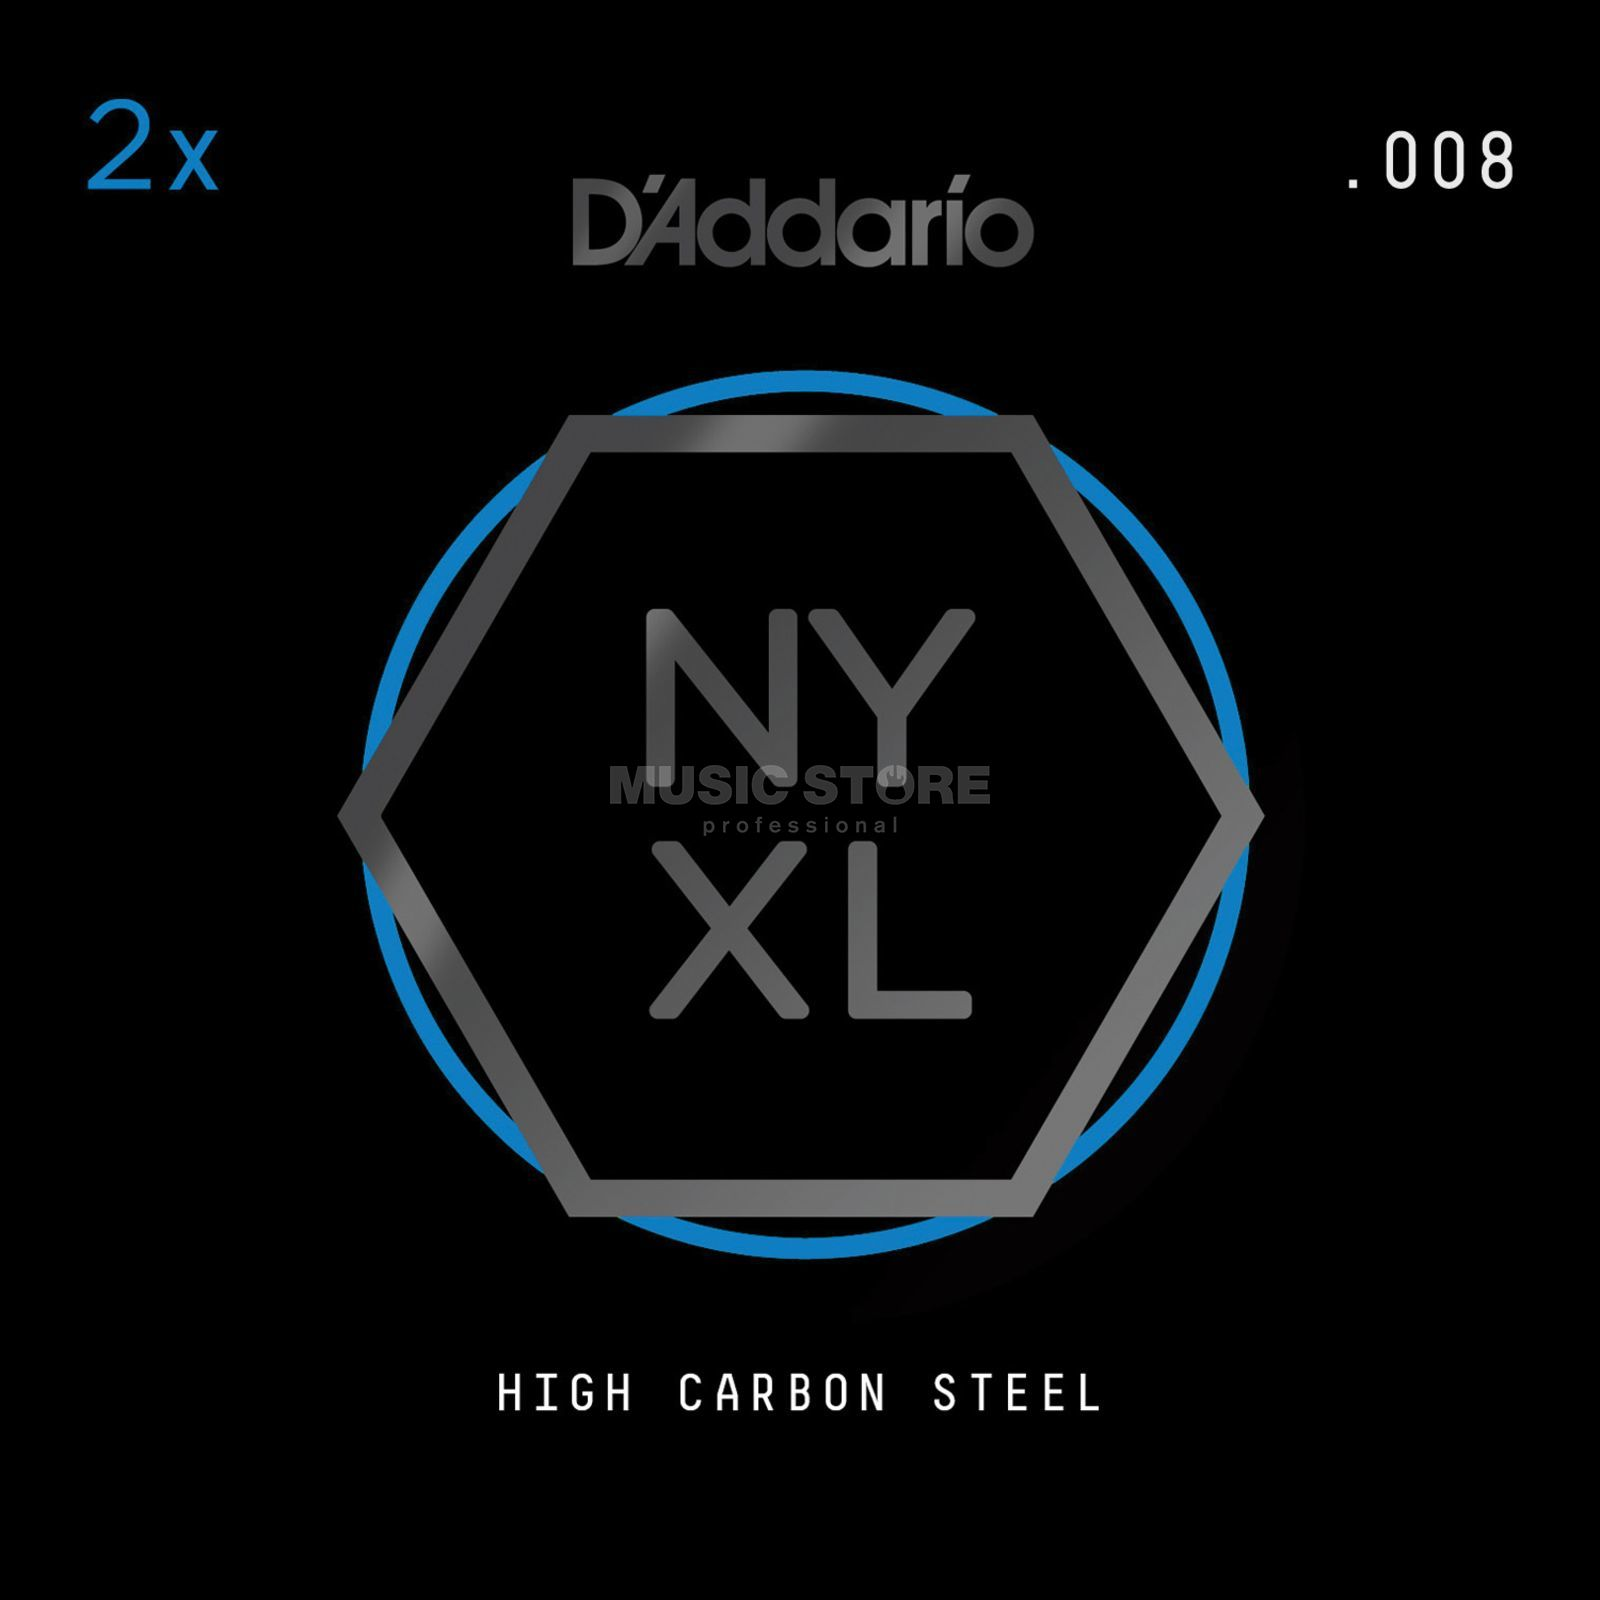 D'Addario NYPL008 Plain Single String 2-Pack - High Carbon Steel Image du produit